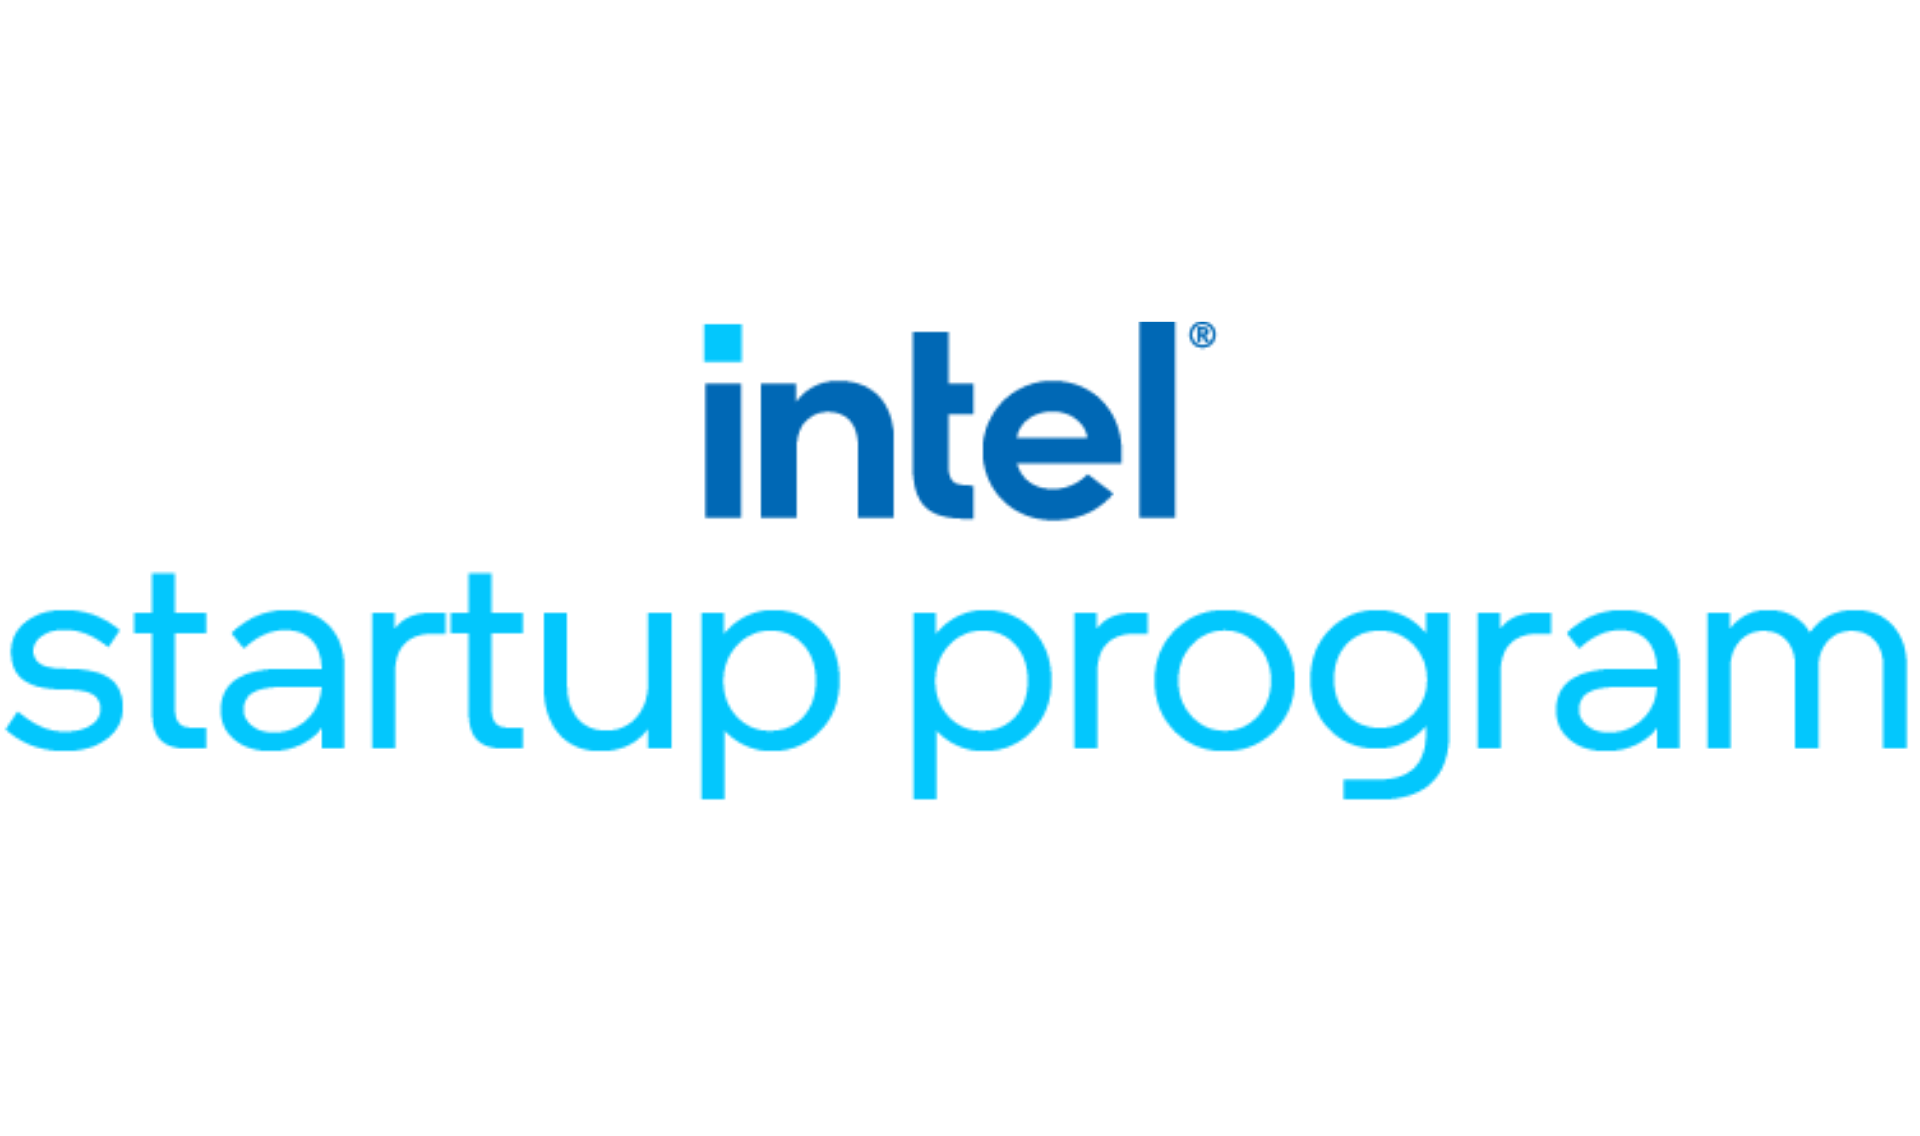 intel_new_logo (6)